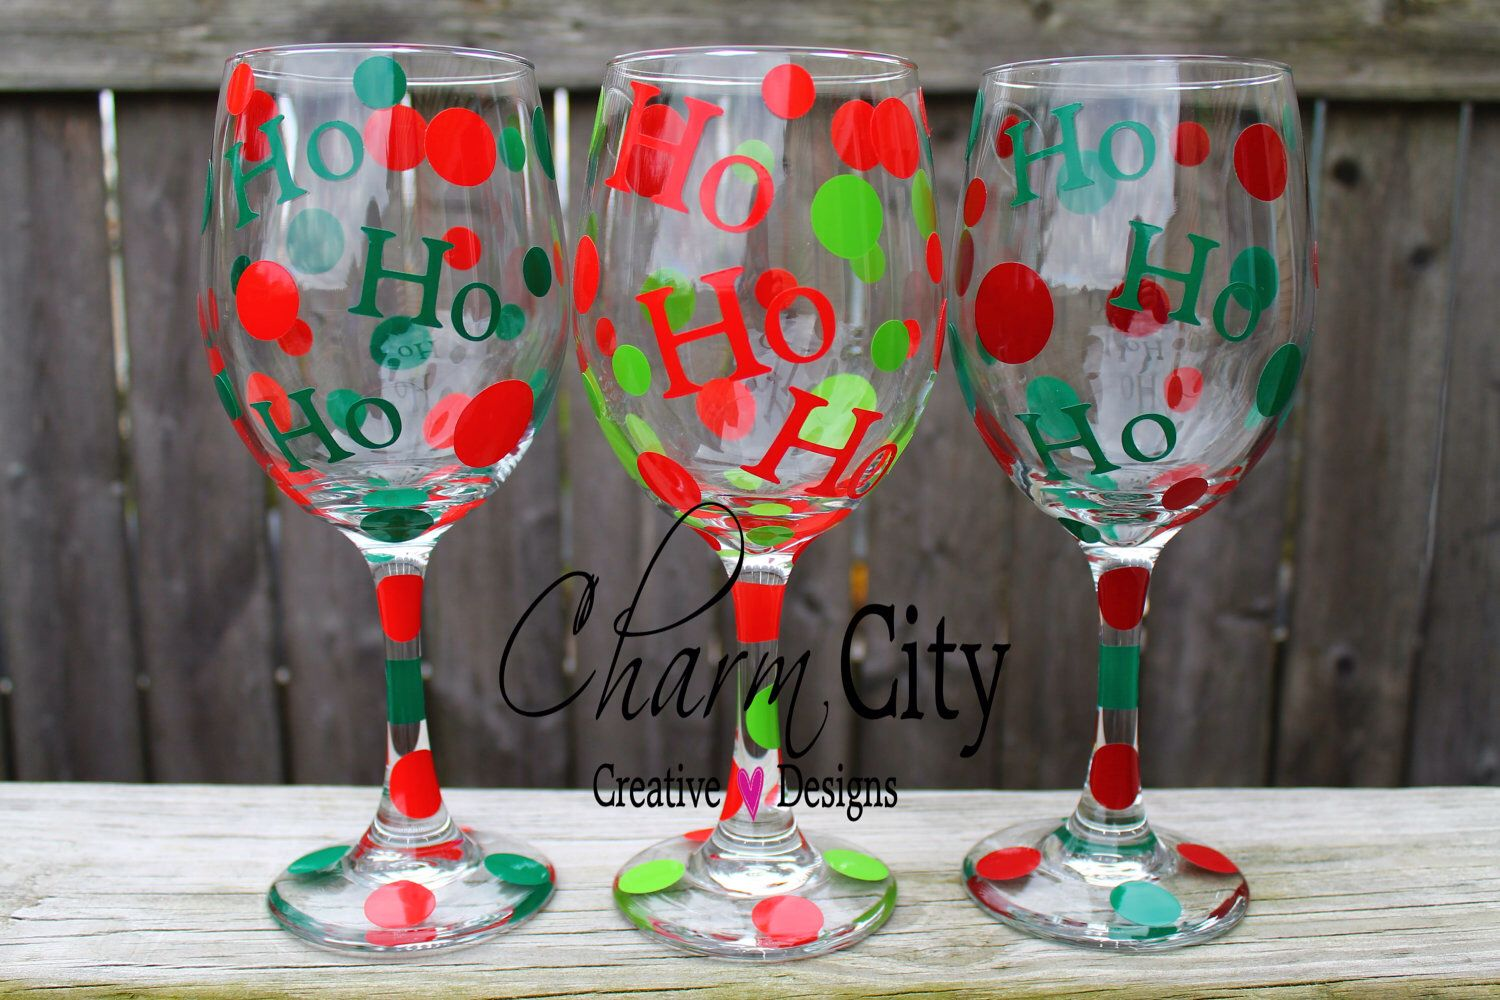 Holiday Wine Glass 20 Oz Christmas Holidays Gifts By Ahindle78 On Etsy Https Www Etsy Com Listing Holiday Wine Painted Wine Glasses Holiday Wine Glass Crafts